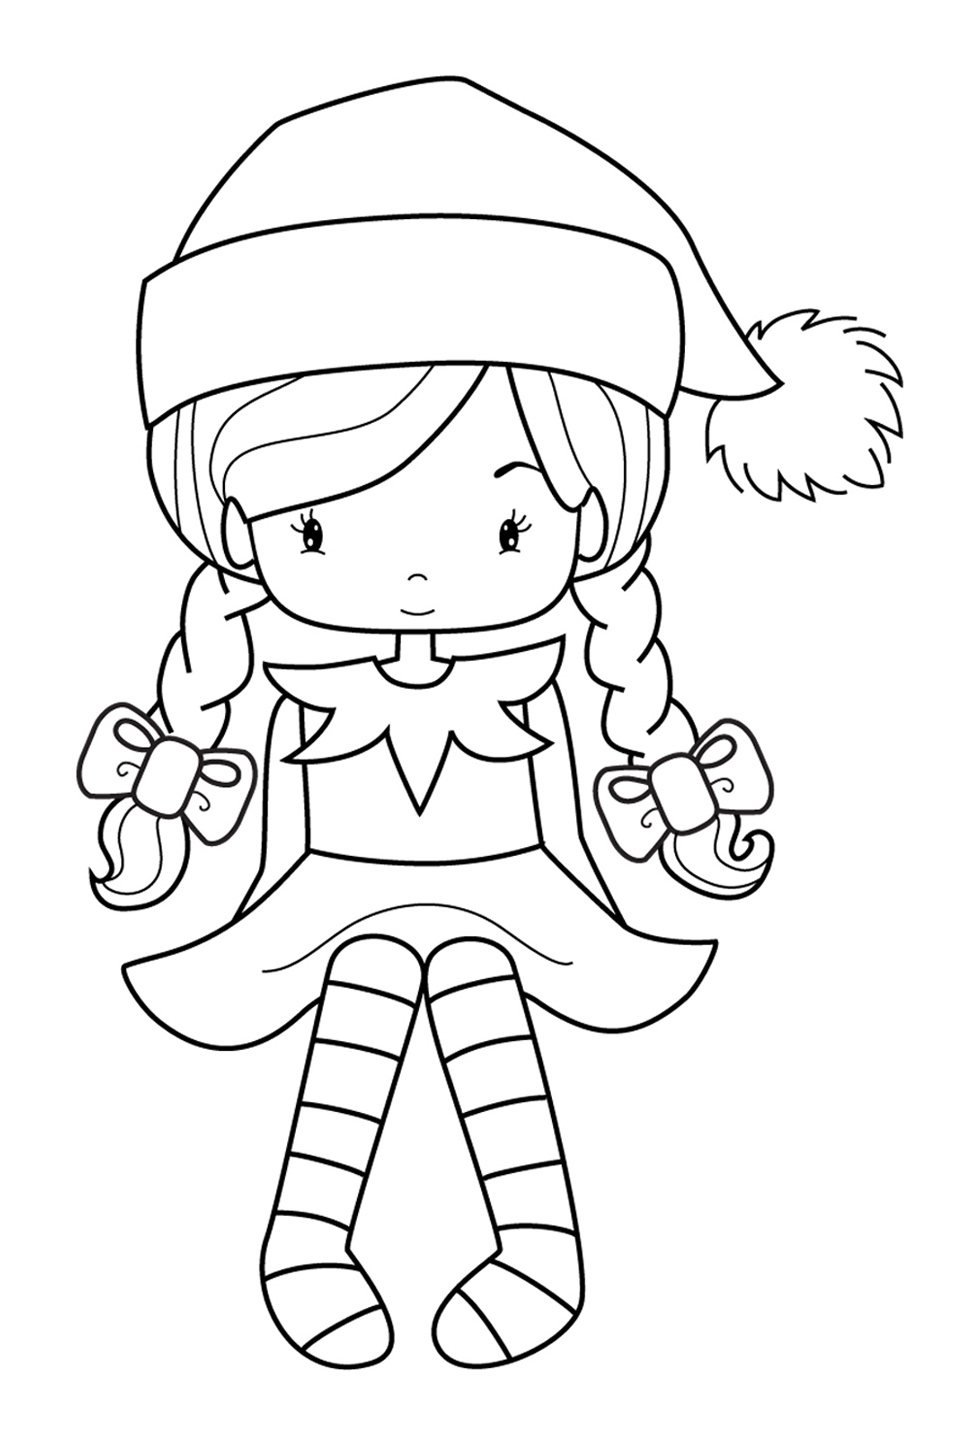 972x1434 Nice Elf On The Shelf Coloring Pages General Boy To Print Free